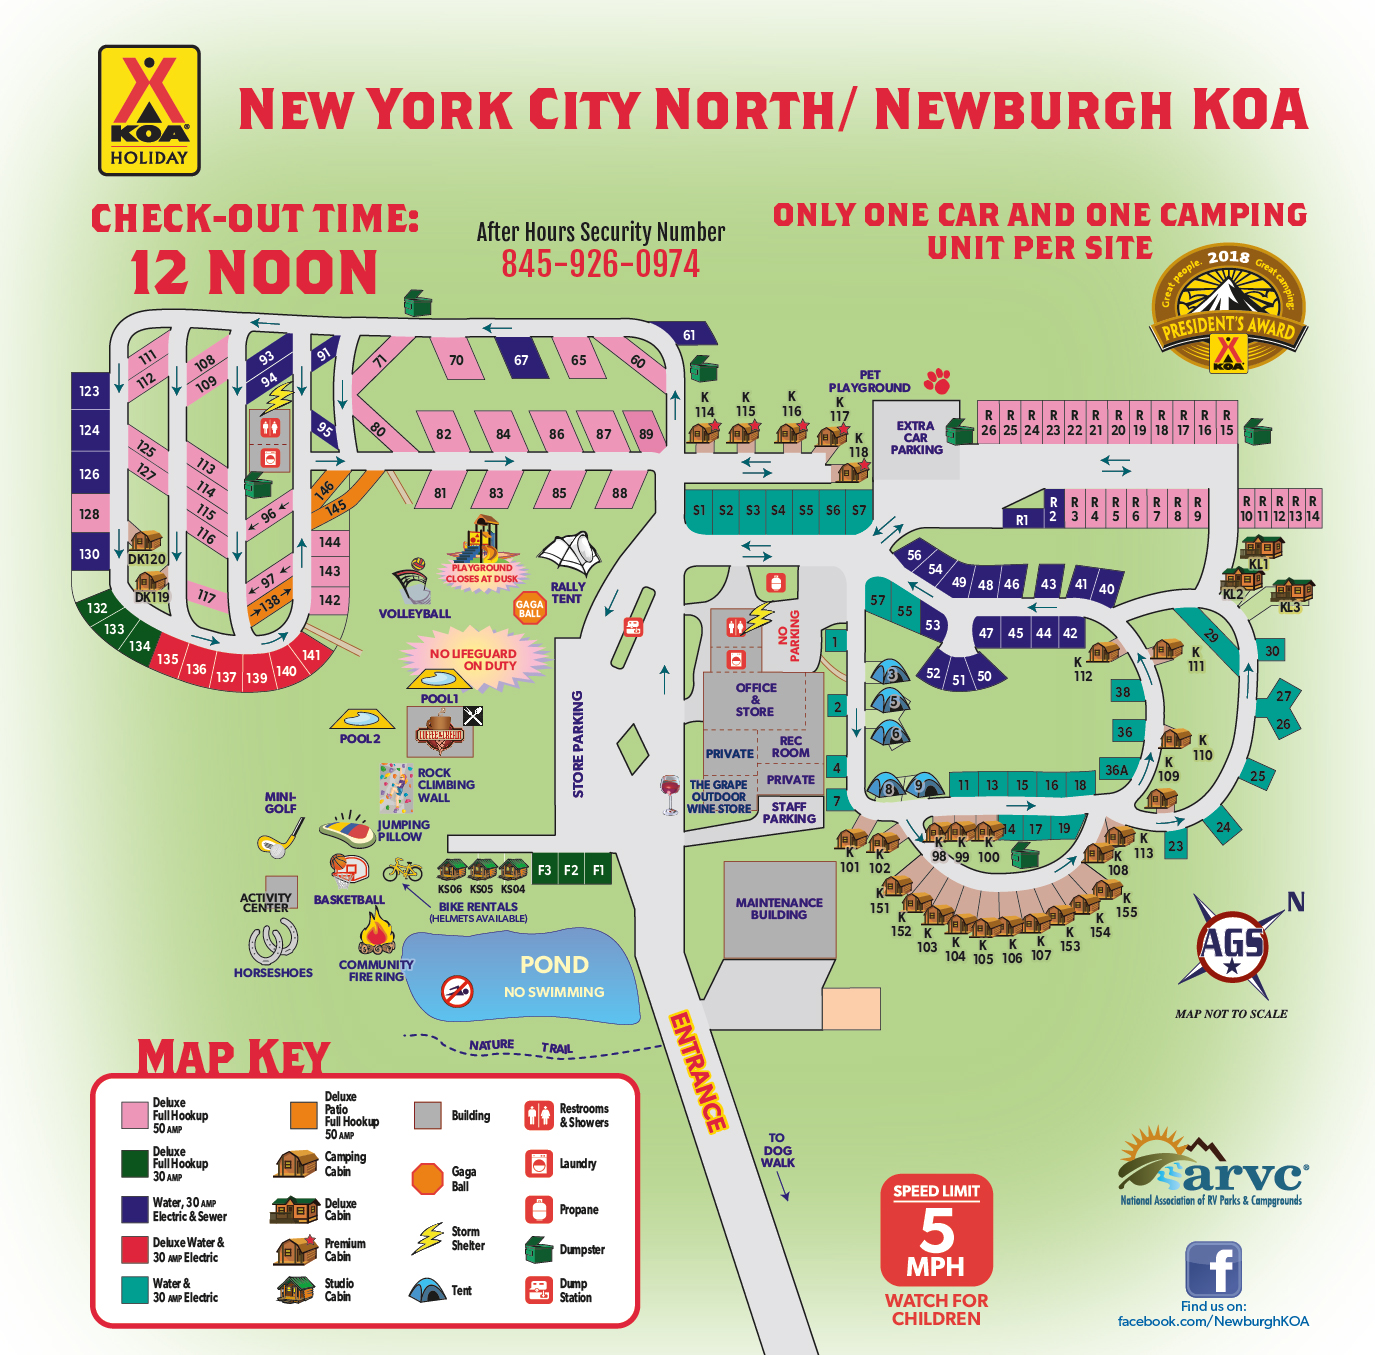 Newburgh New York Map.Plattekill New York Campground New York City North Newburgh Koa